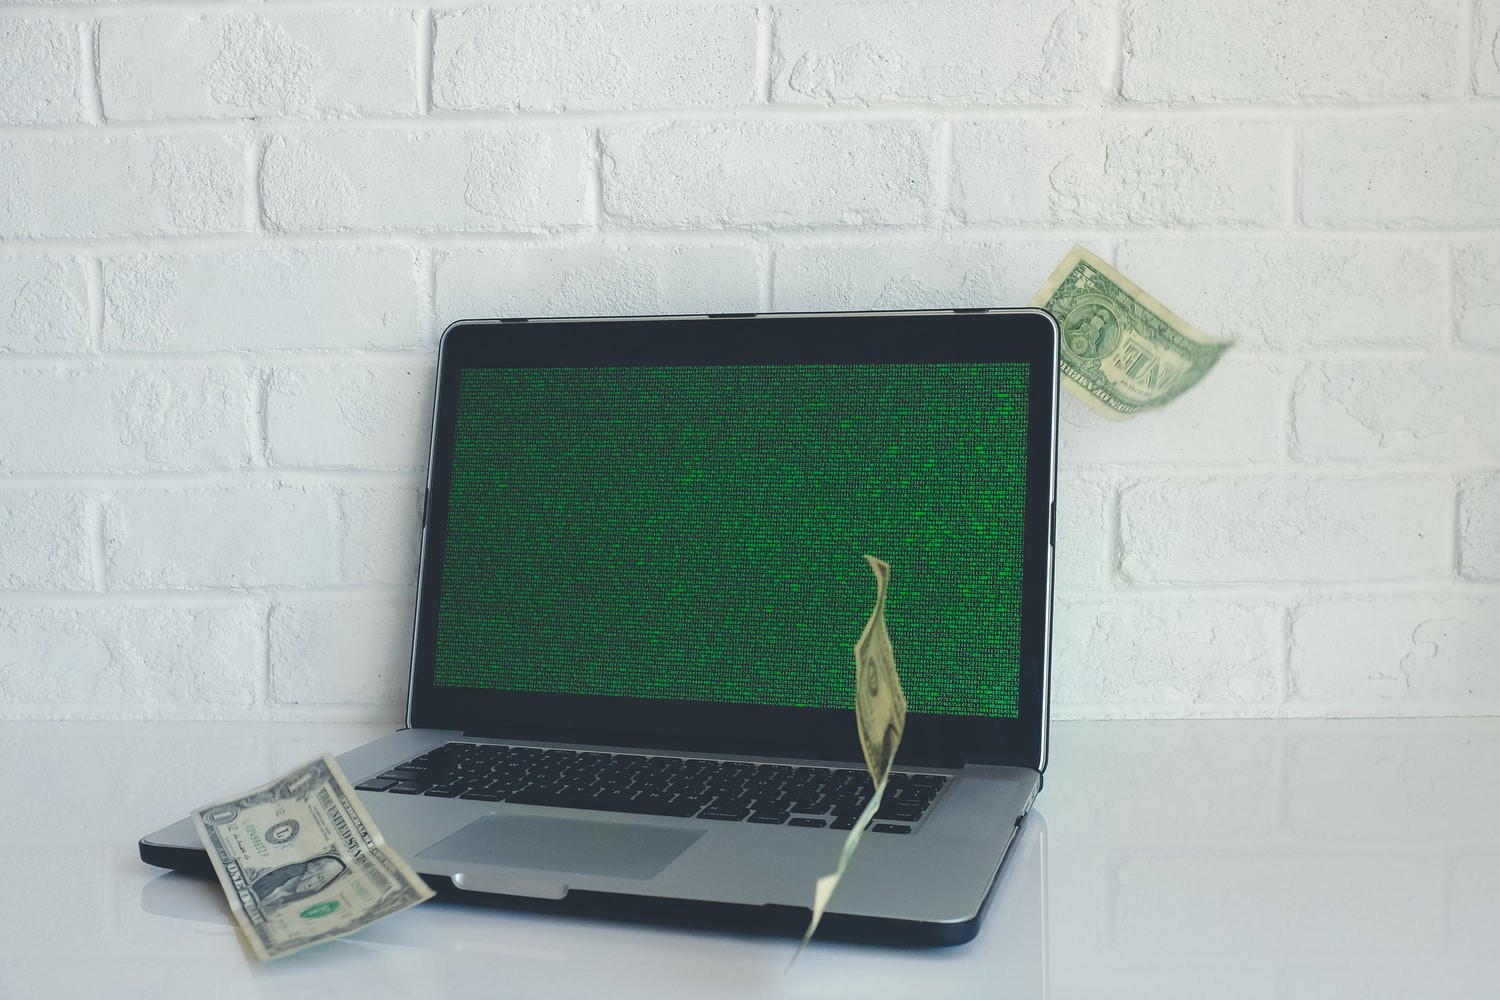 Laptop with dollar bills in the air.